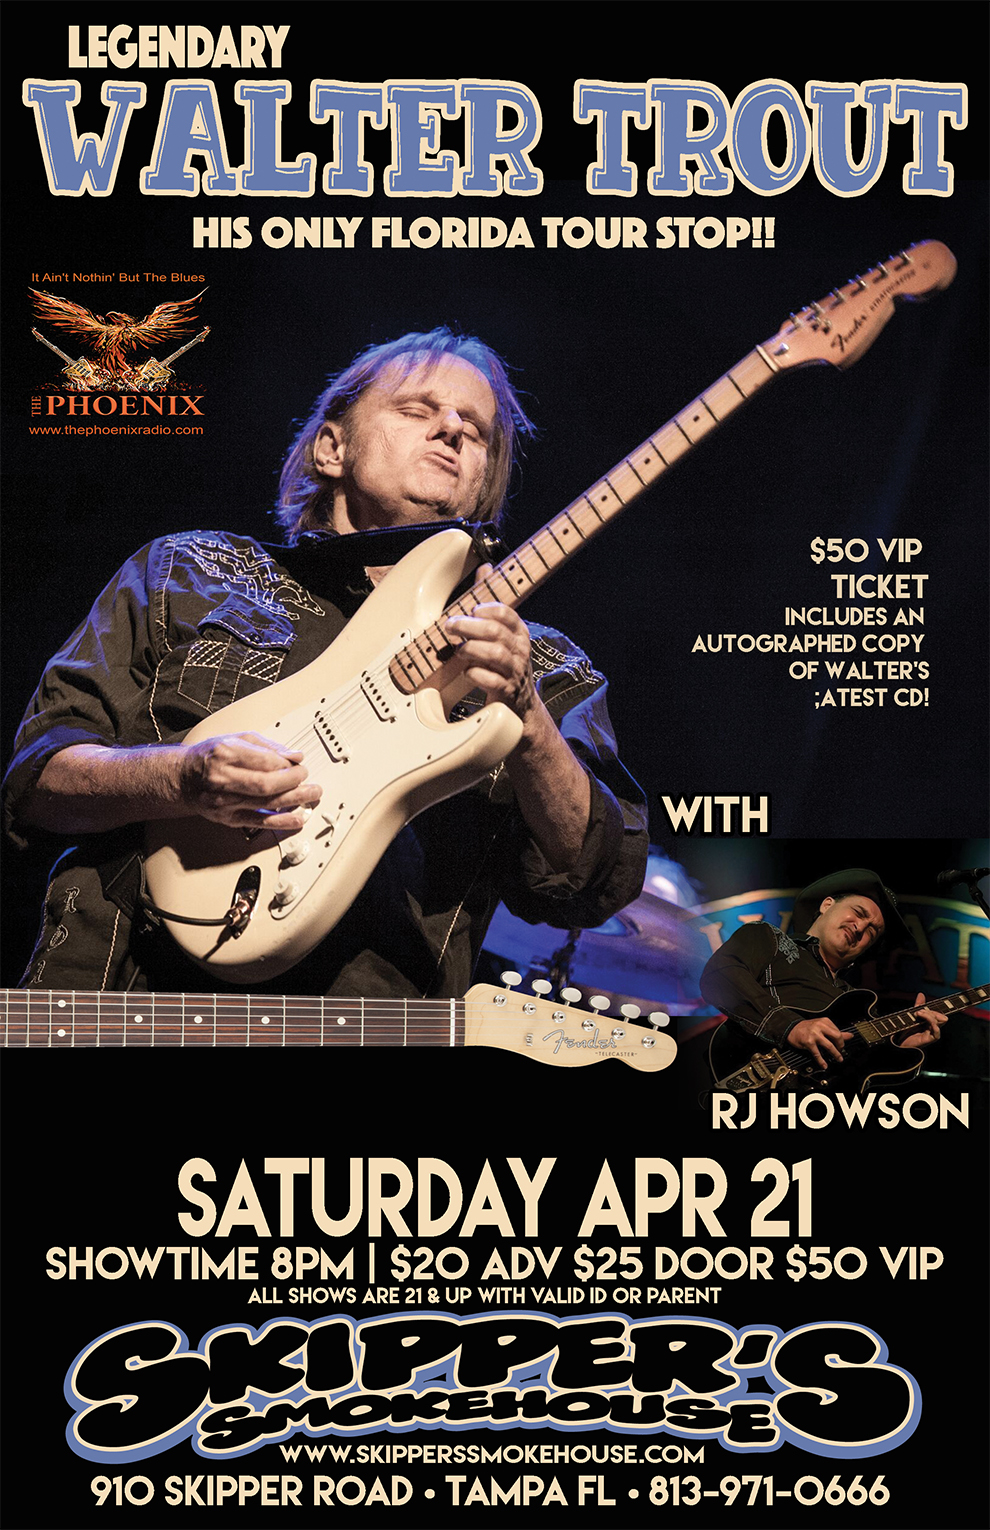 Walter Trout W Rj Howson 2025 And 50 Vip